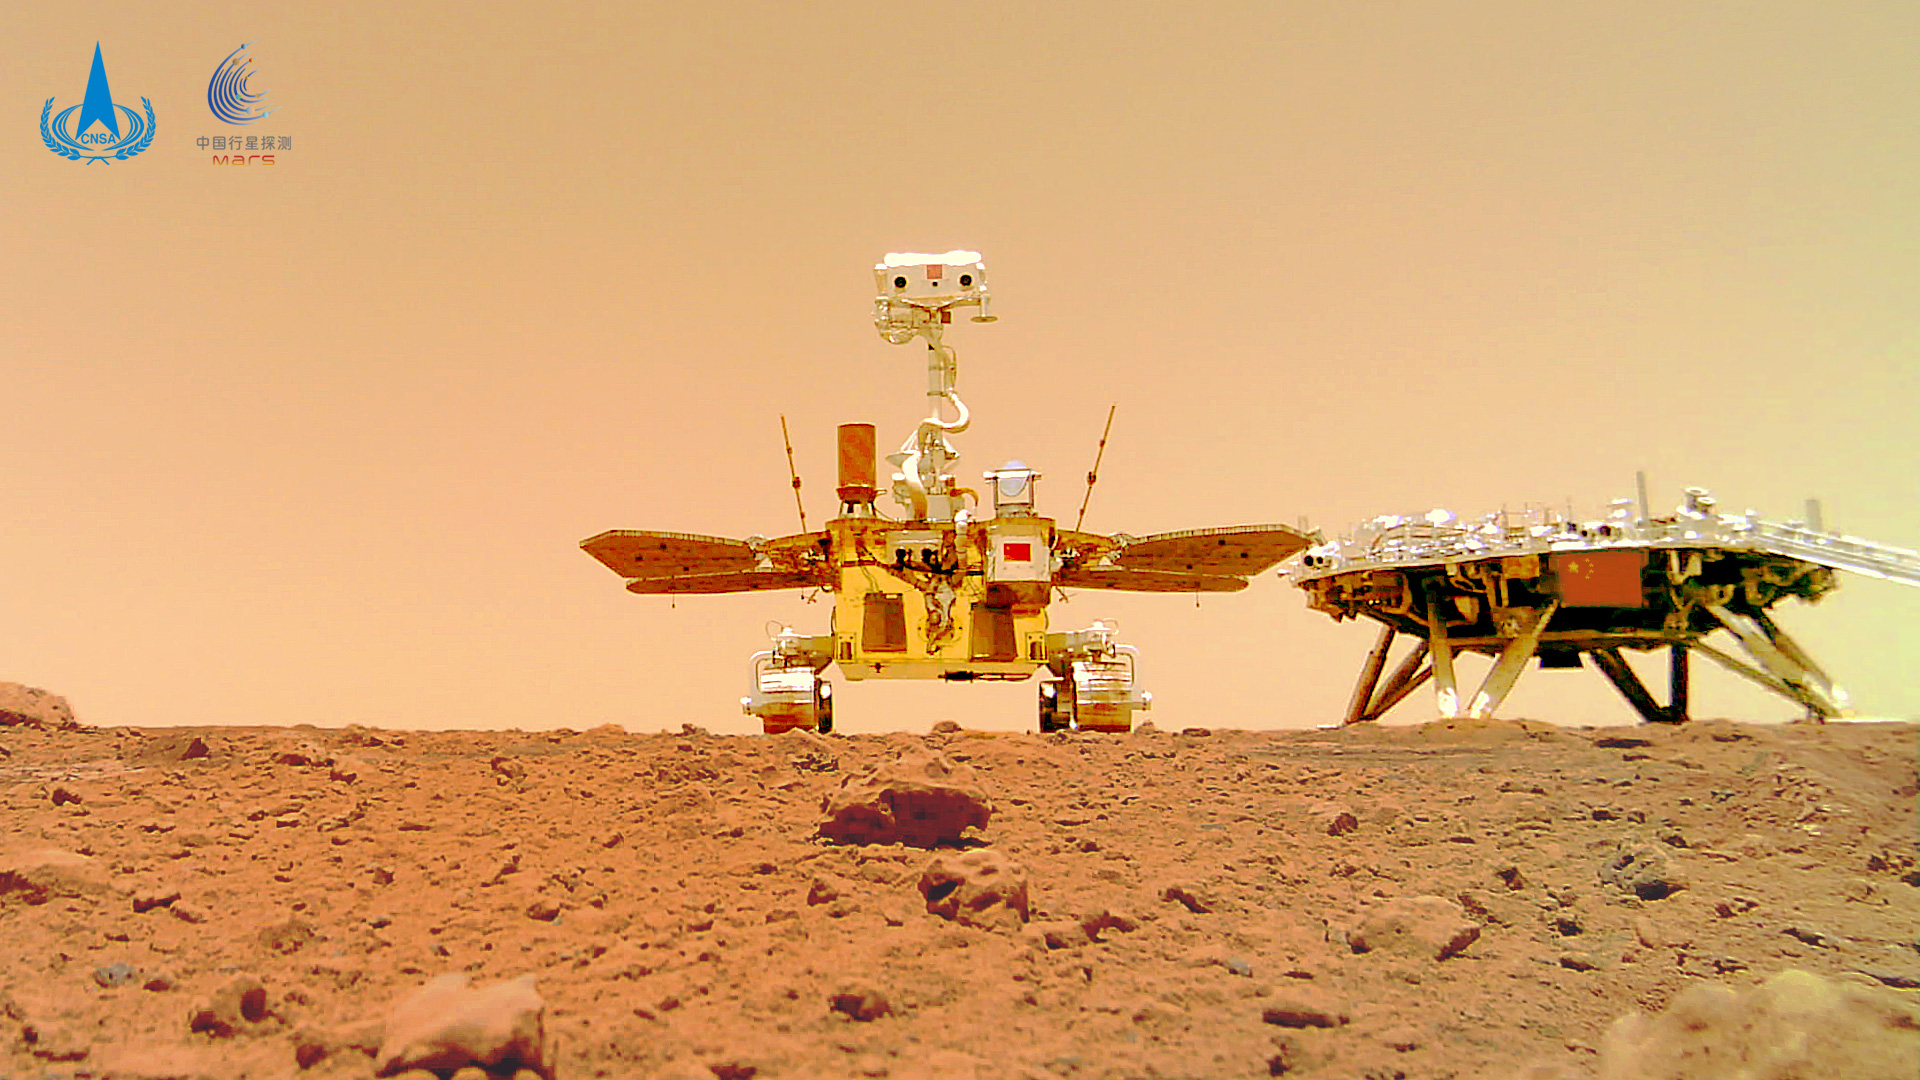 China's Mars rover took a selfie - Engadget